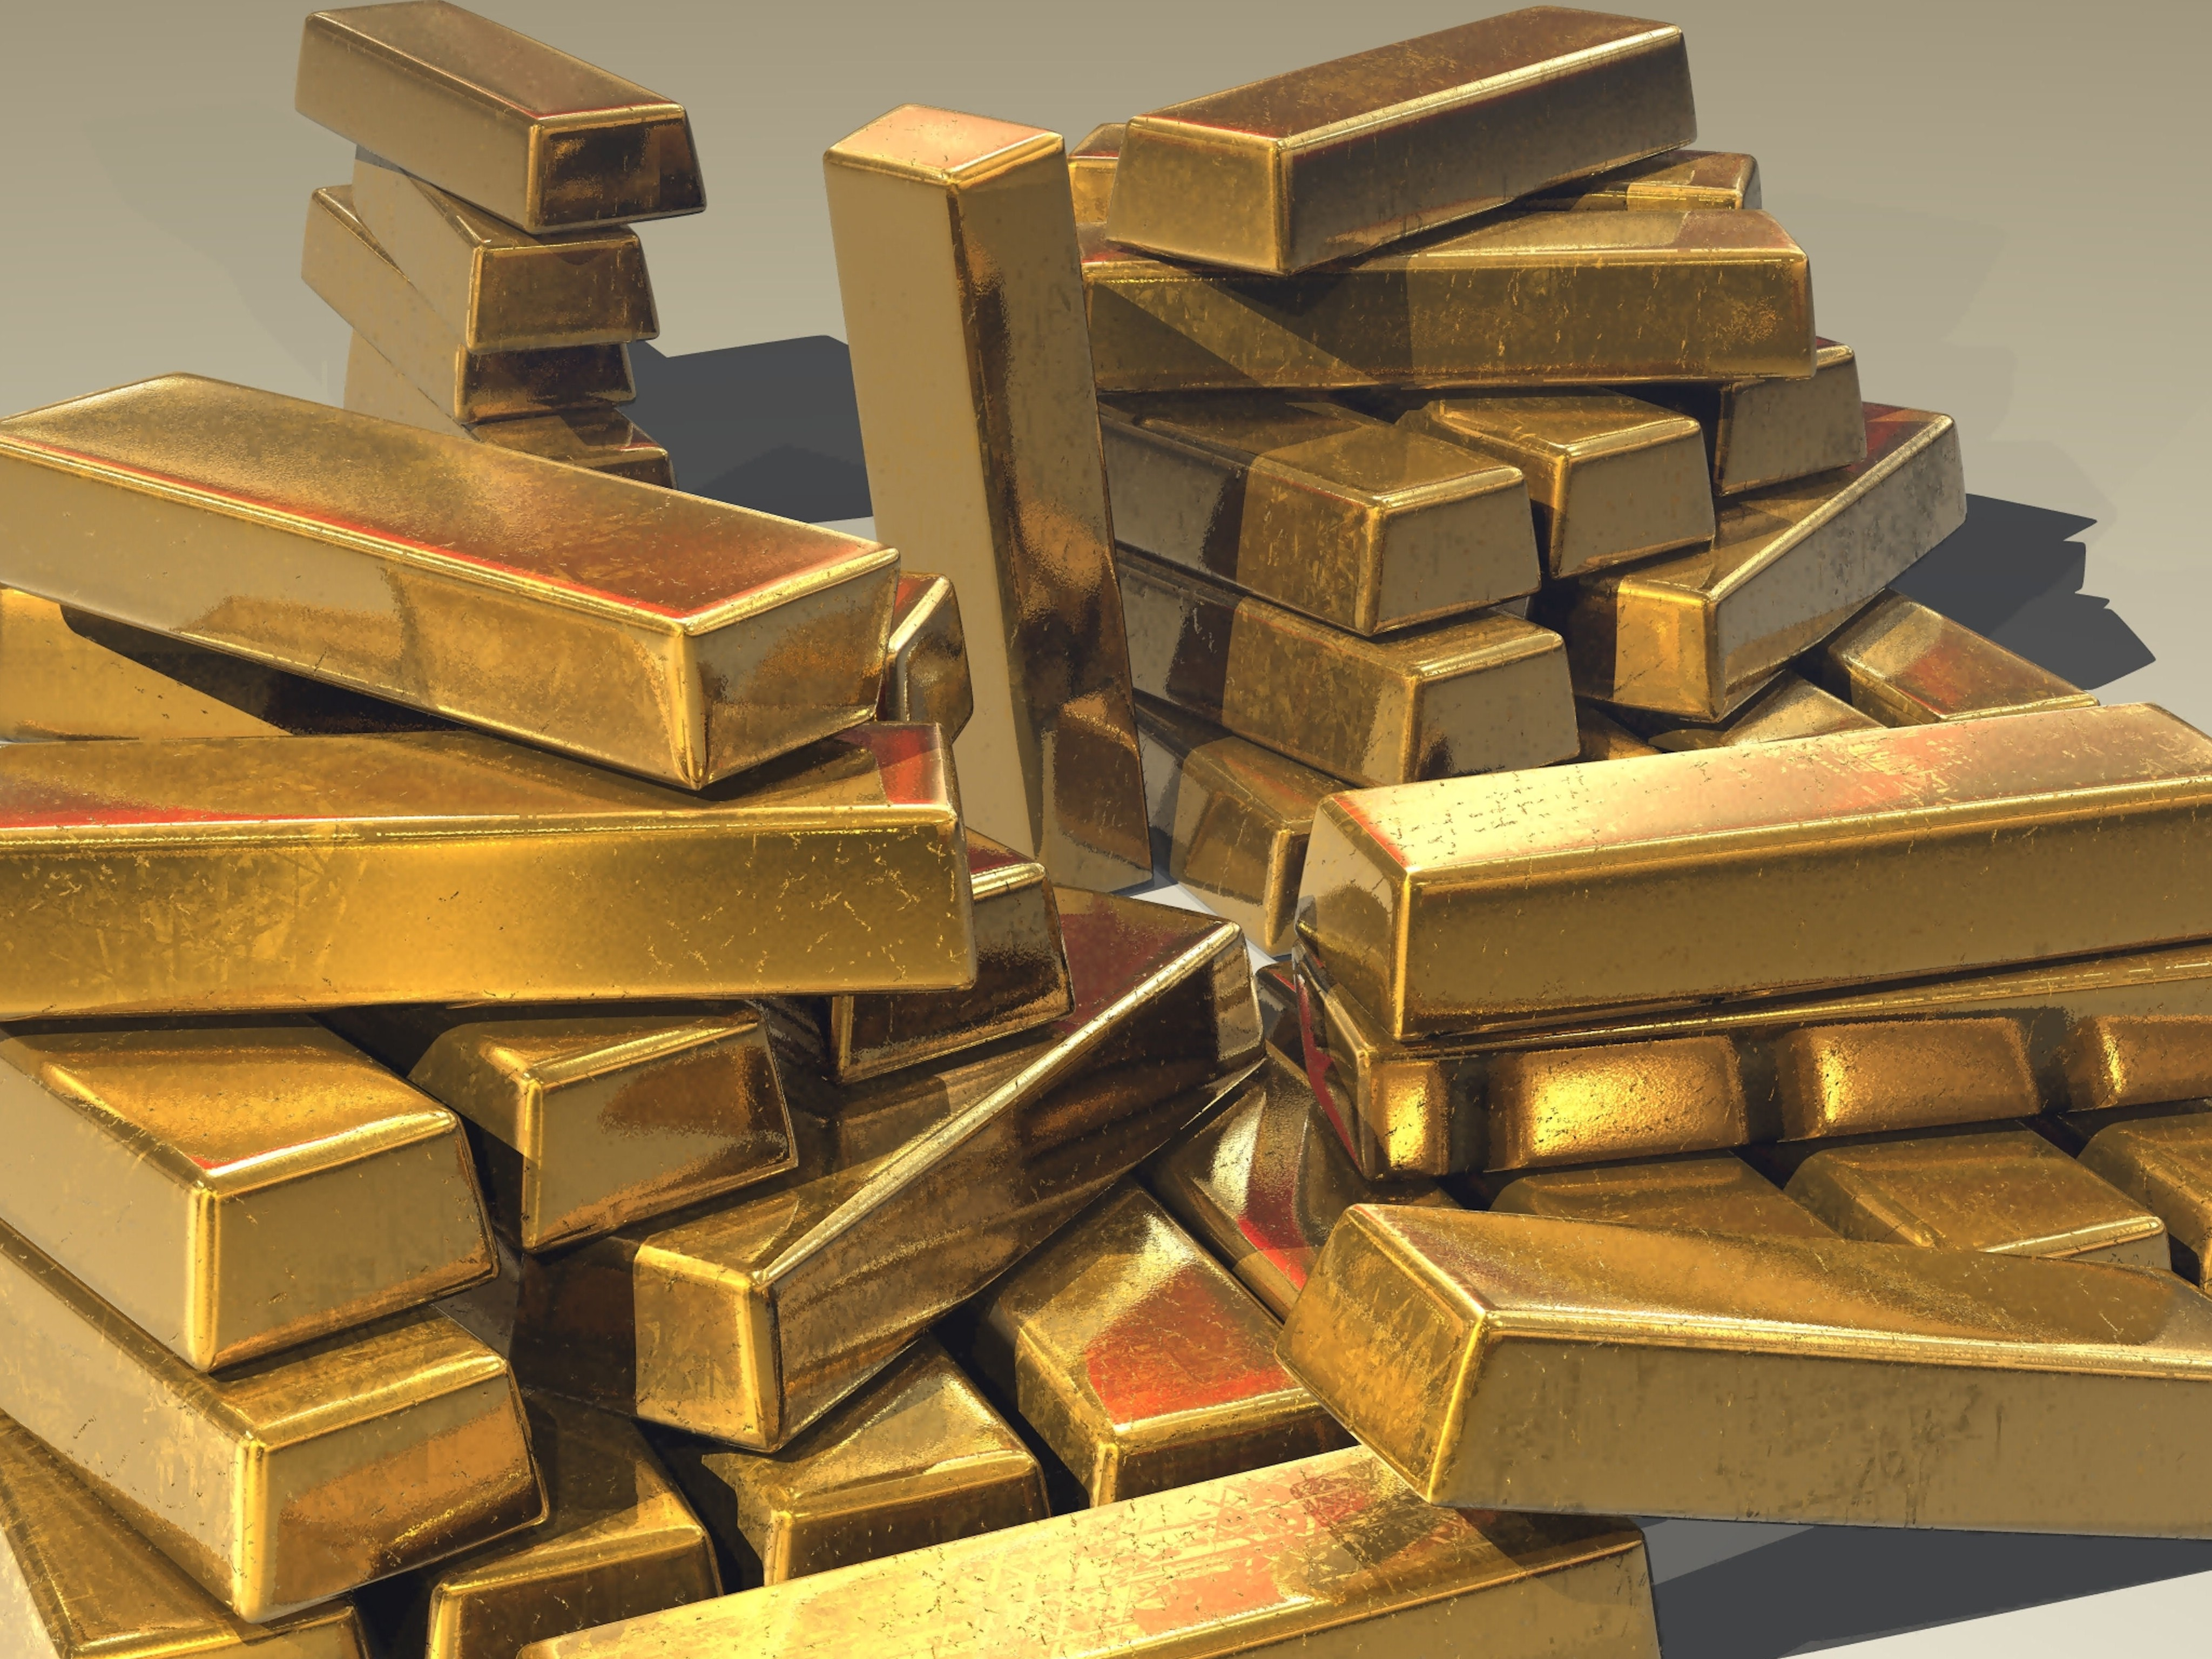 What are uses of Gold?